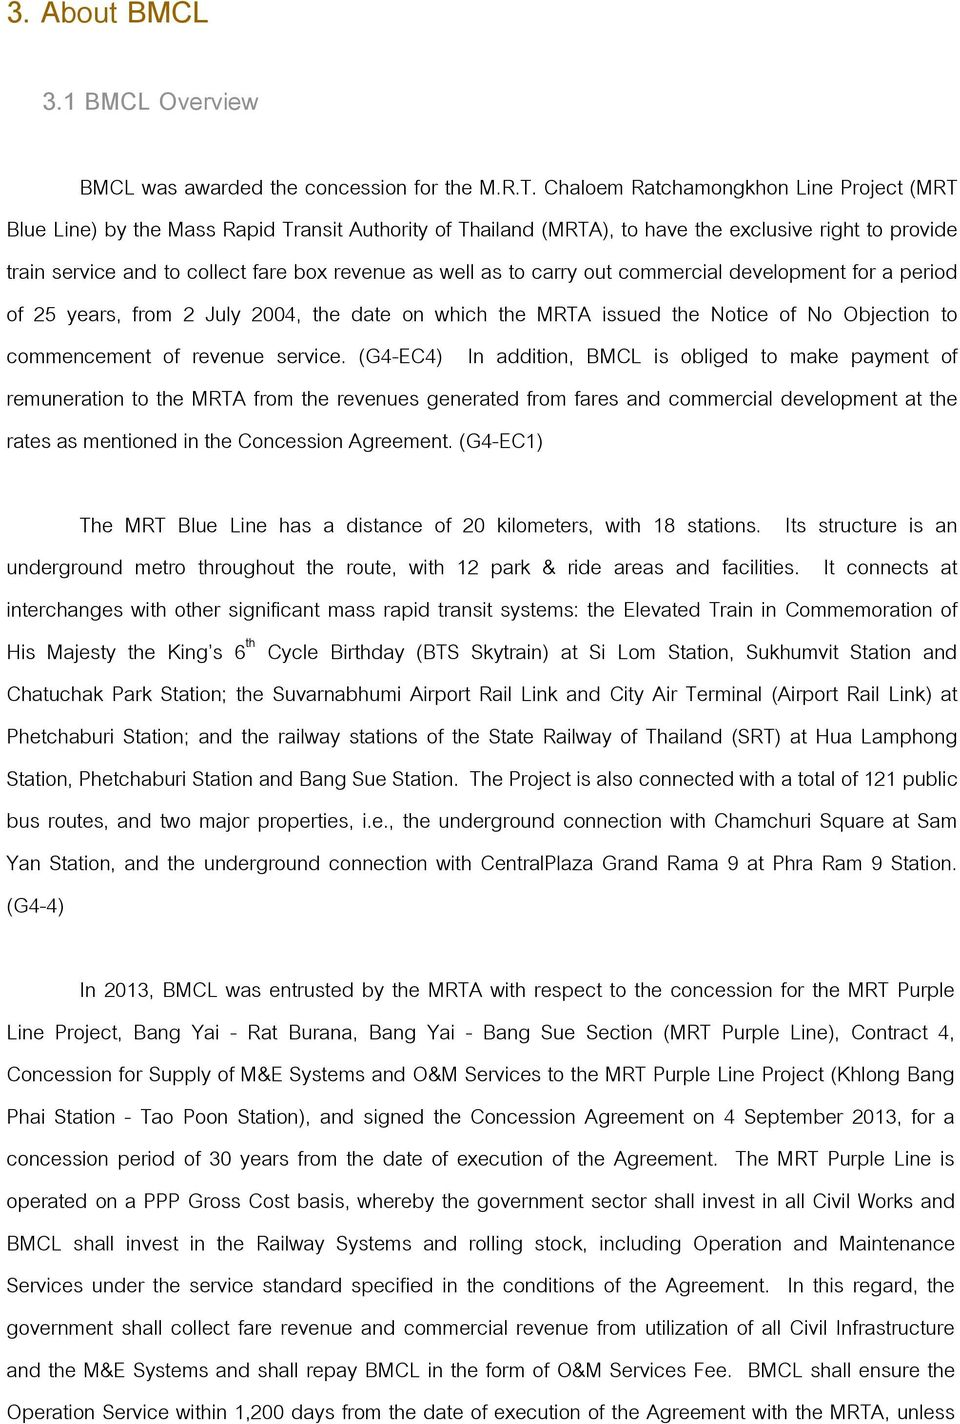 well as to carry out commercial development for a period of 25 years, from 2 July 2004, the date on which the MRTA issued the Notice of No Objection to commencement of revenue service.